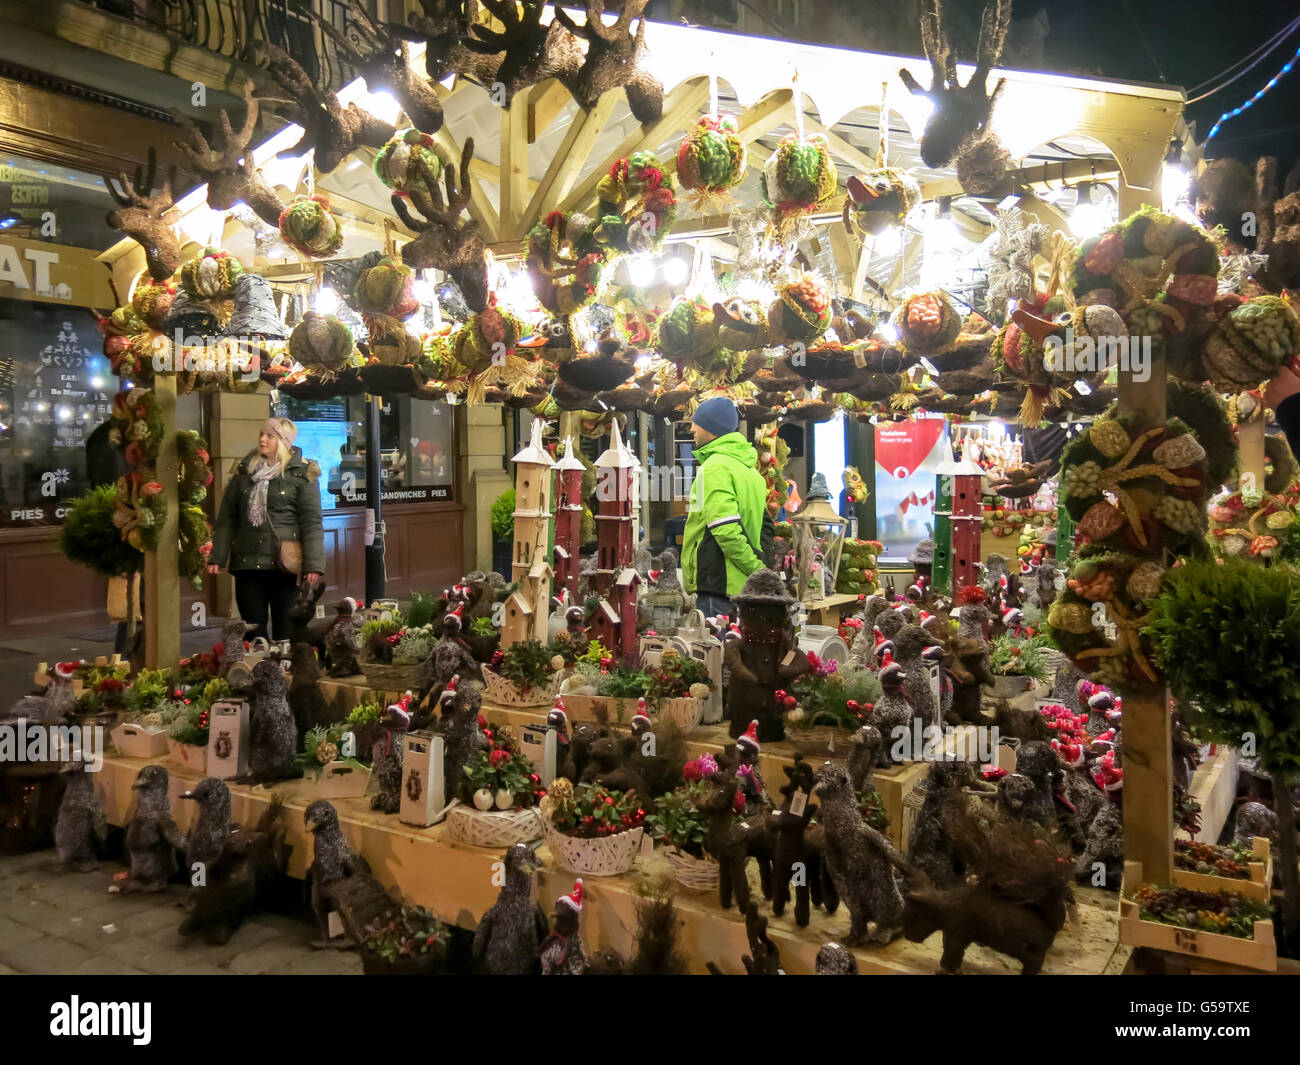 Night scene with people shopping at market stall on Christmas market in Manchester, England, United Kingdom - Stock Image